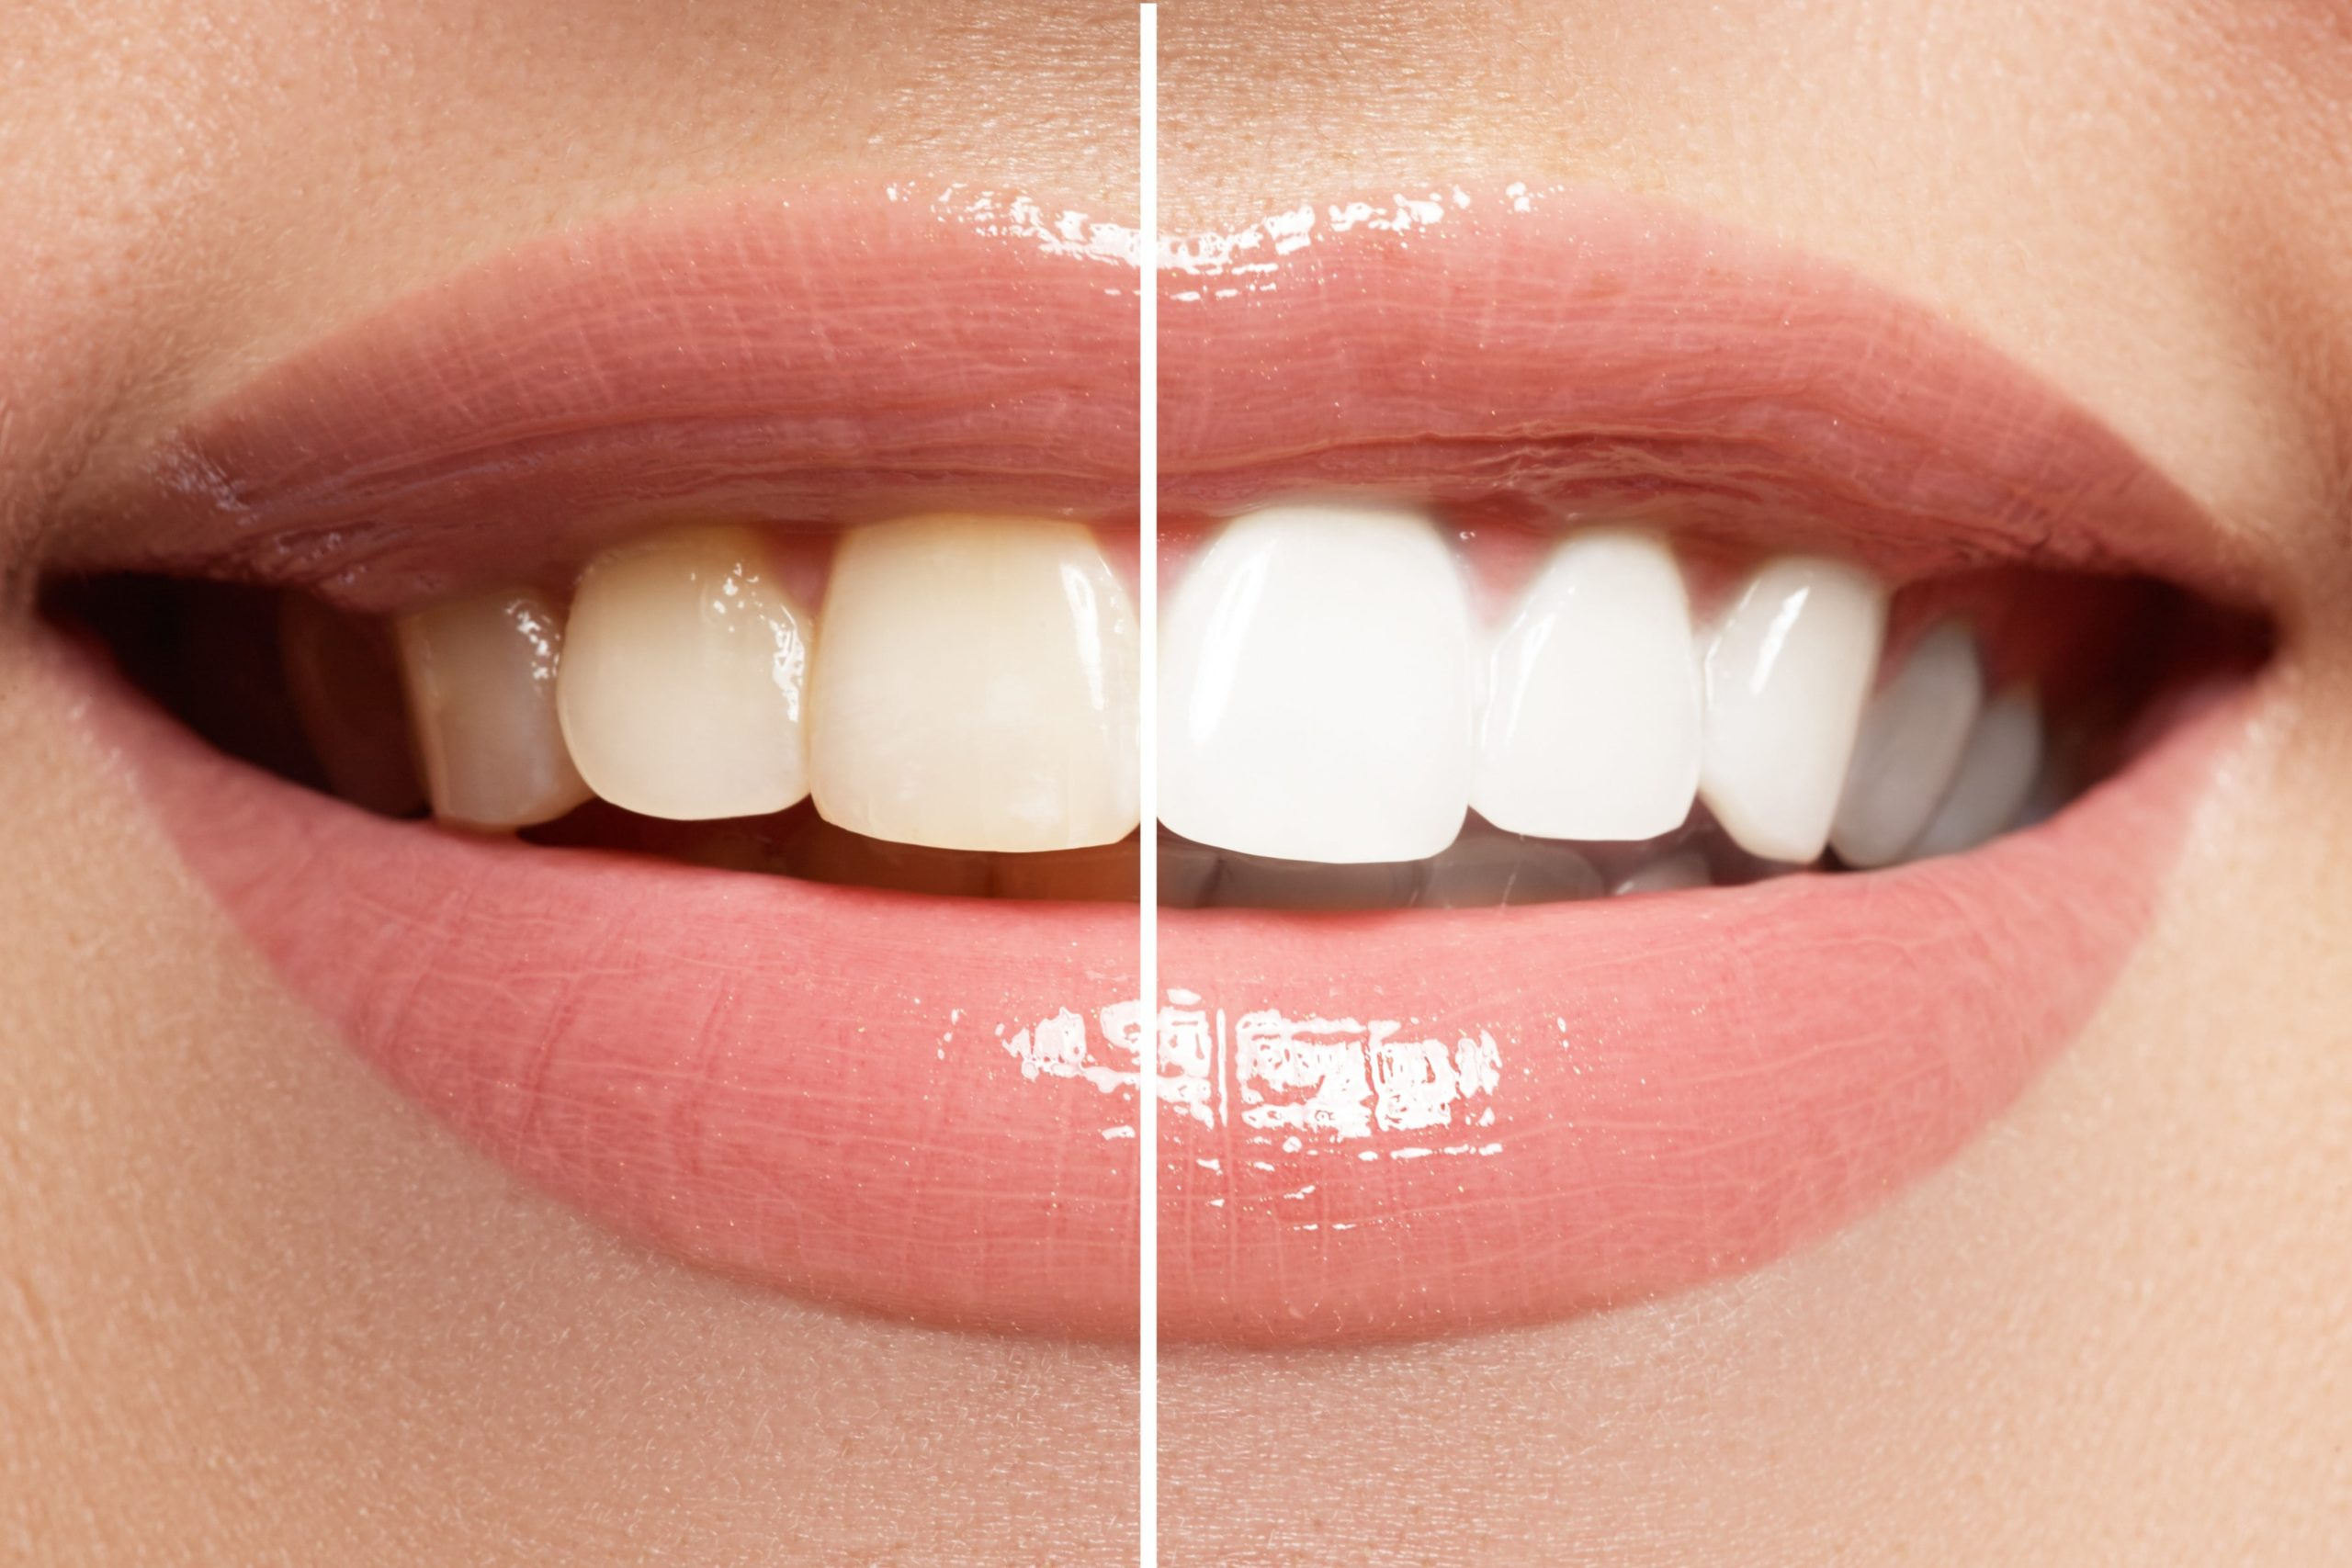 before and after teeth whitening.